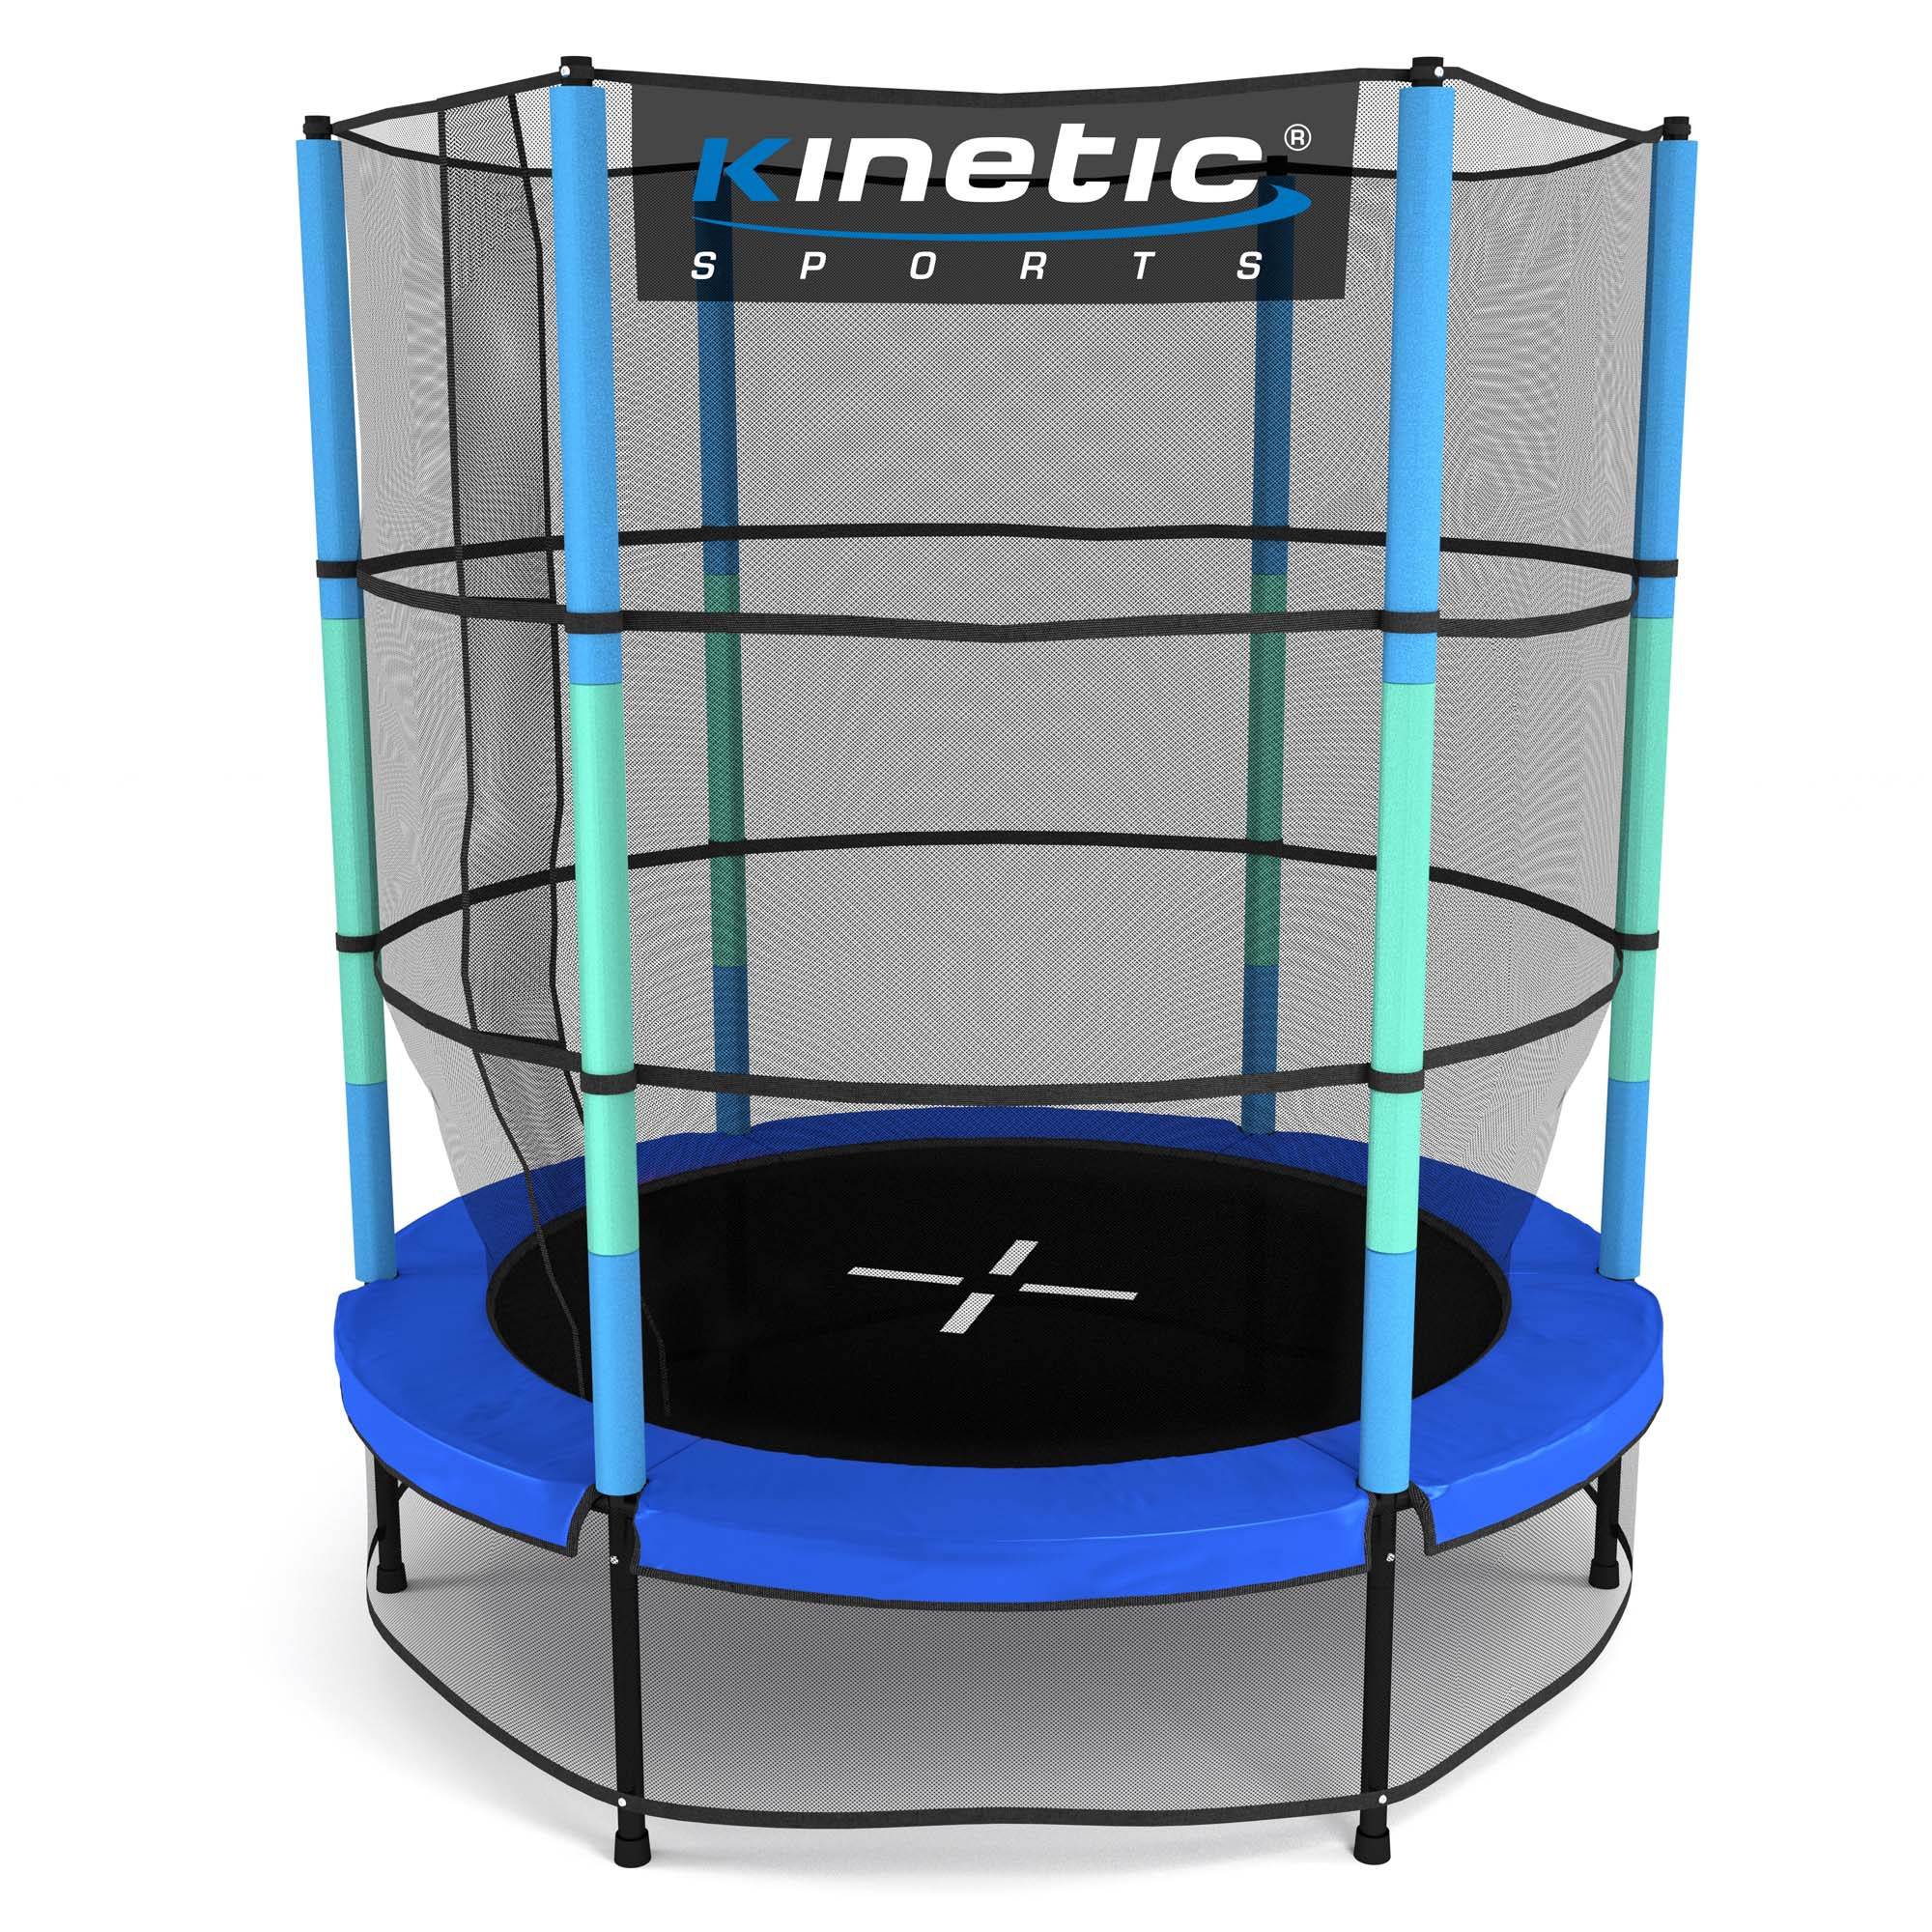 kinder trampolin indoor outdoor garten 140cm mit sicherheitsnetz in pink o blau ebay. Black Bedroom Furniture Sets. Home Design Ideas